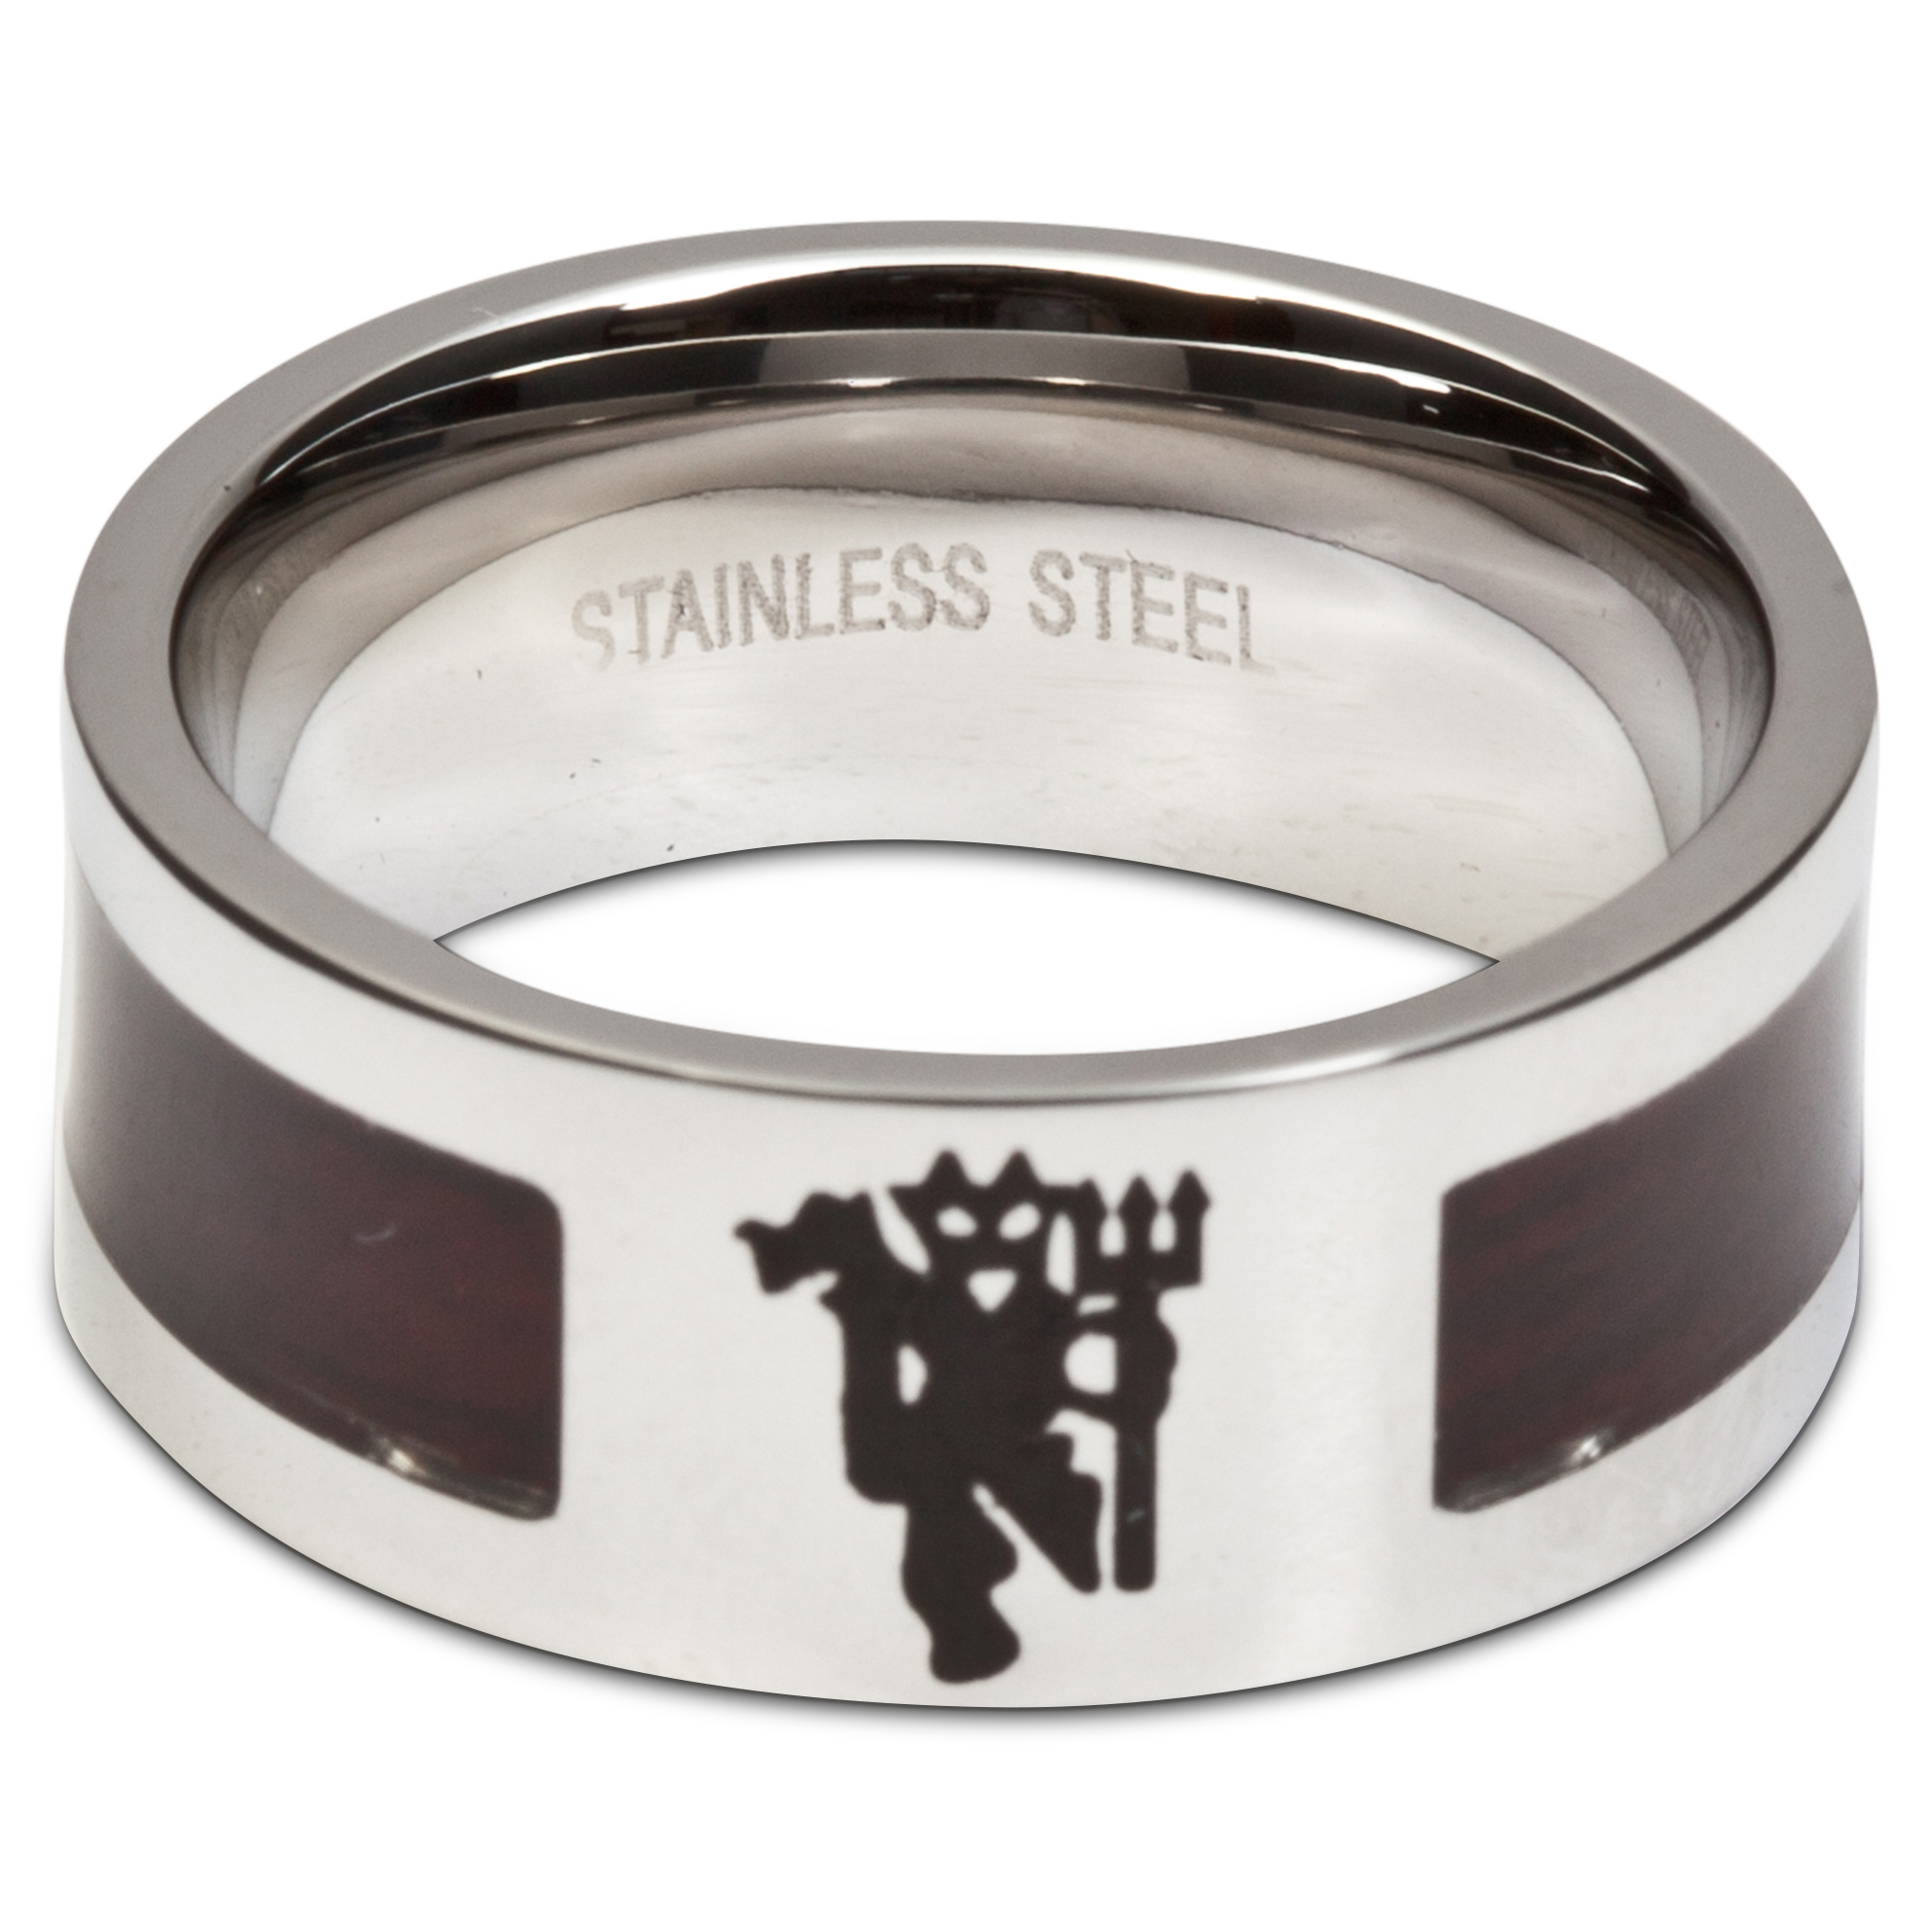 Manchester United Devil Ring with Wooden Look Centre - Stainless Steel